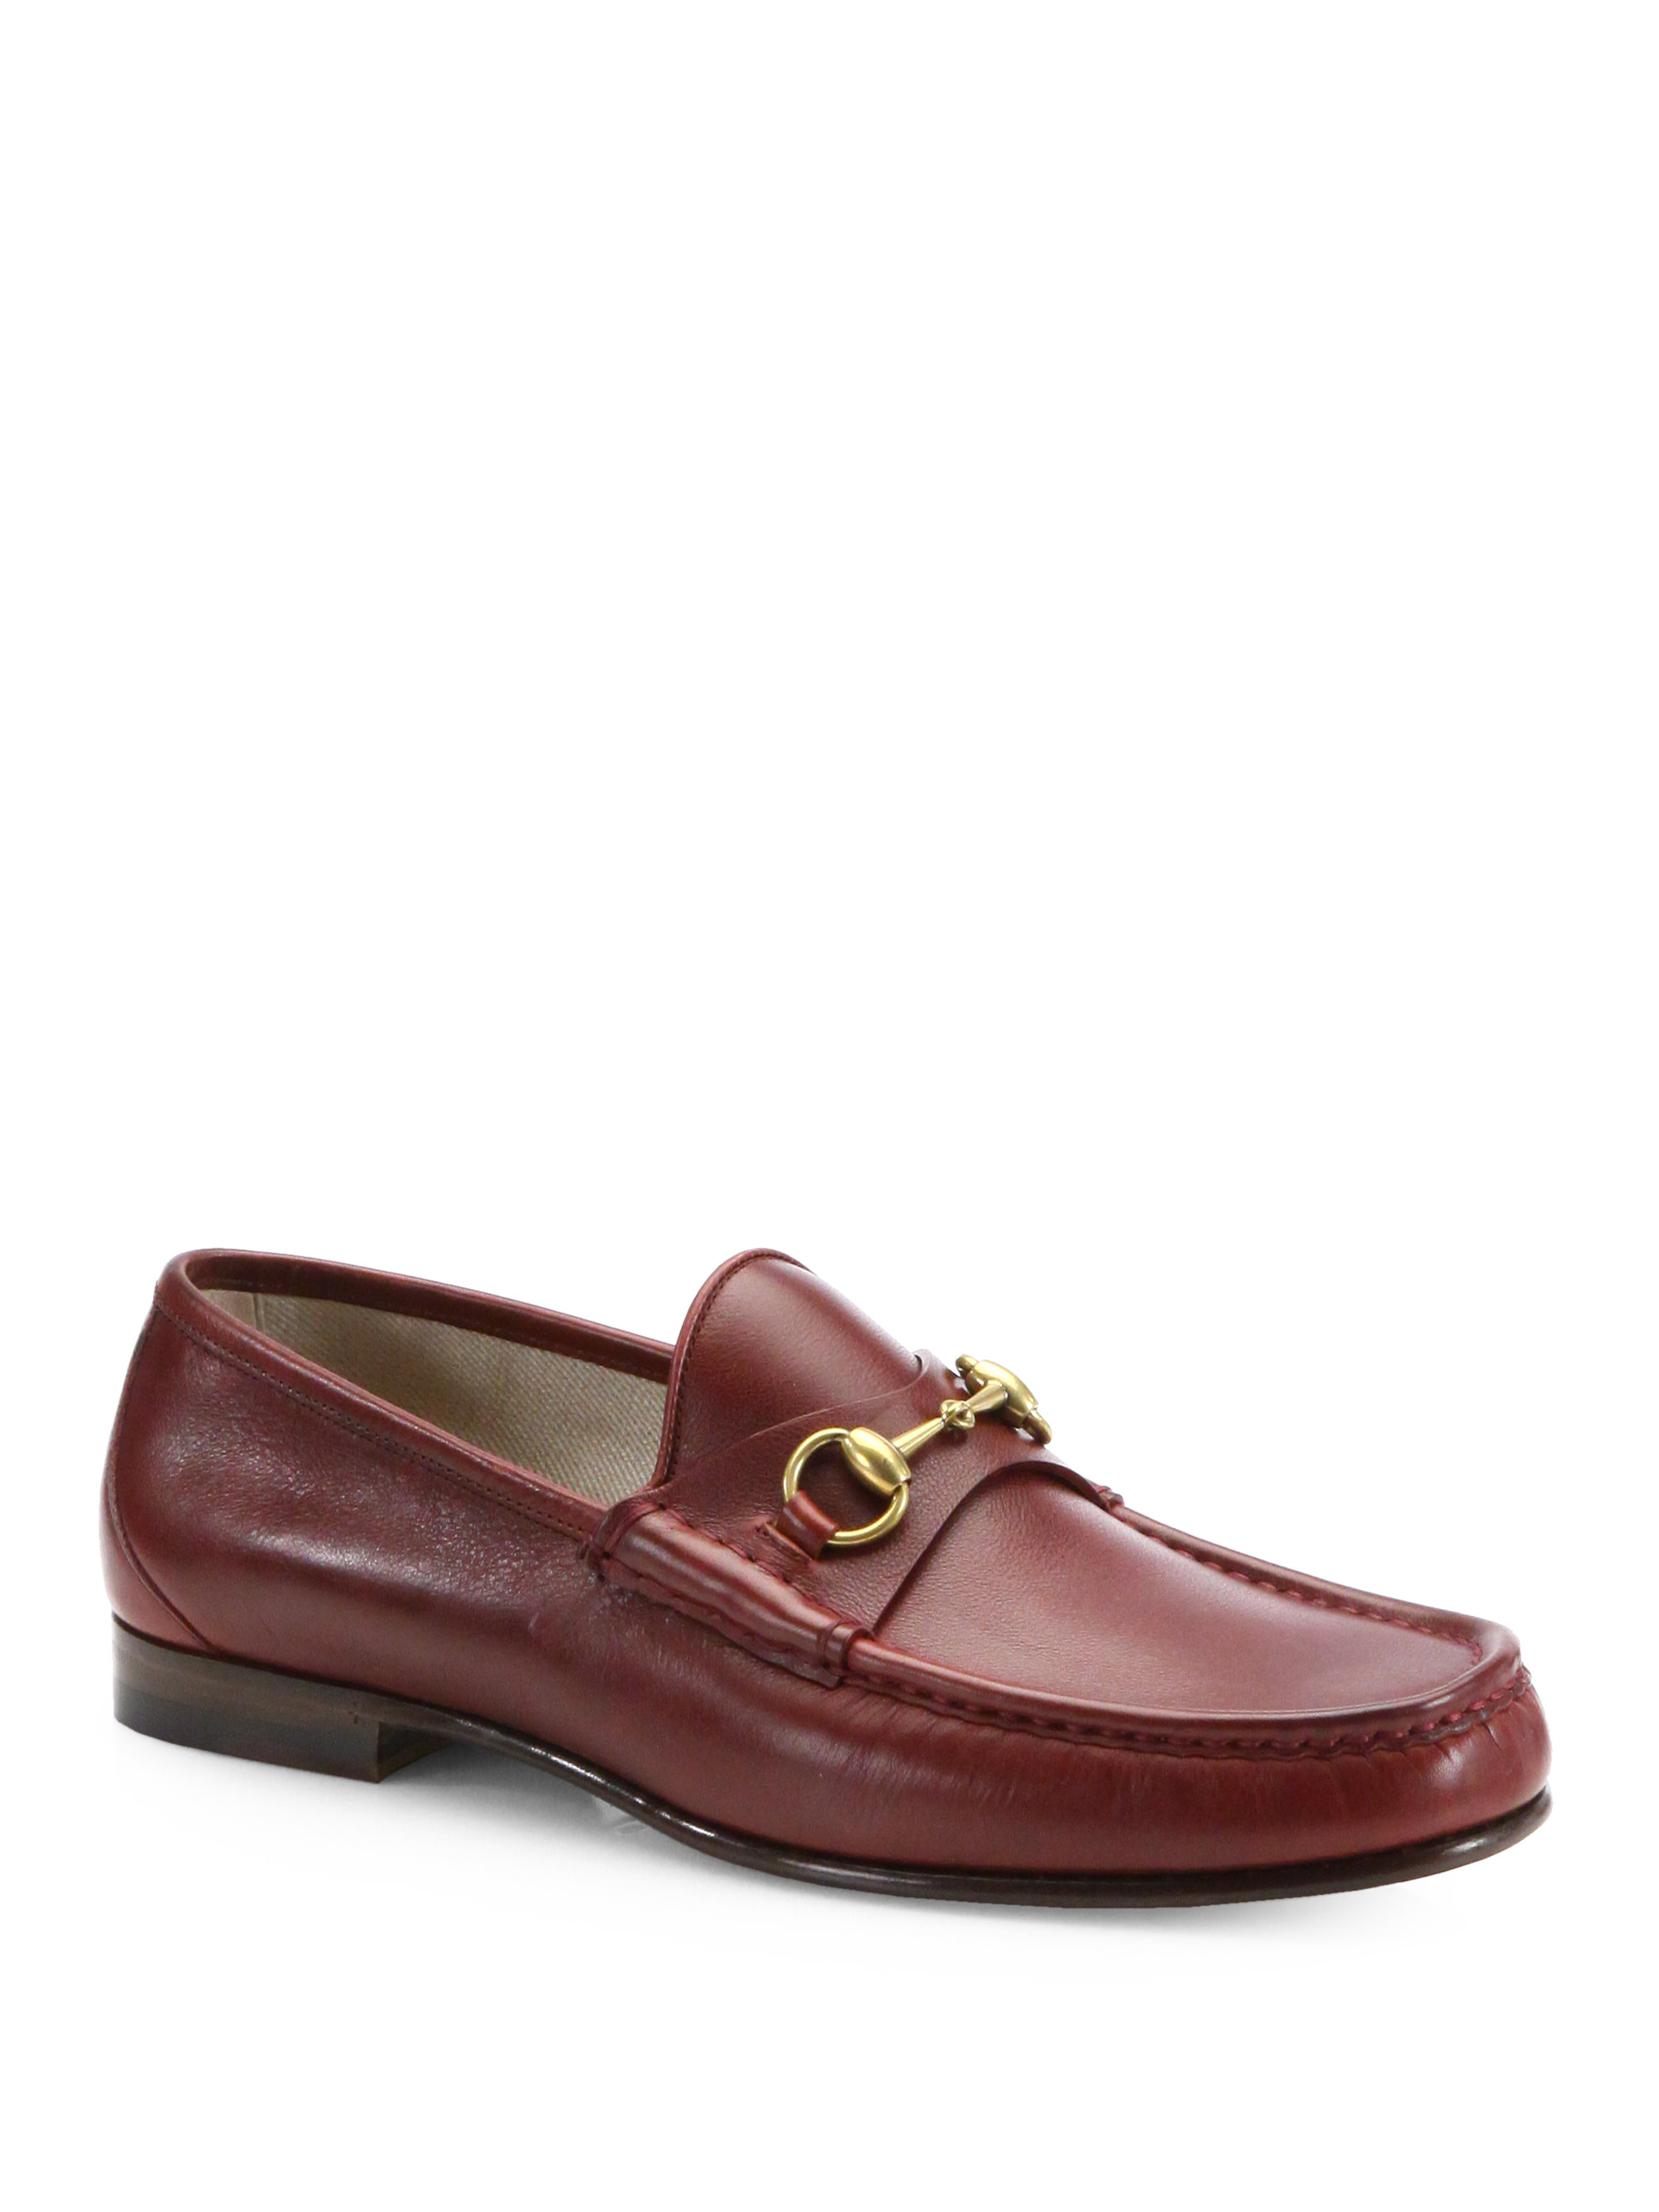 lyst gucci roos 1953 horsebit loafers in brown for men. Black Bedroom Furniture Sets. Home Design Ideas